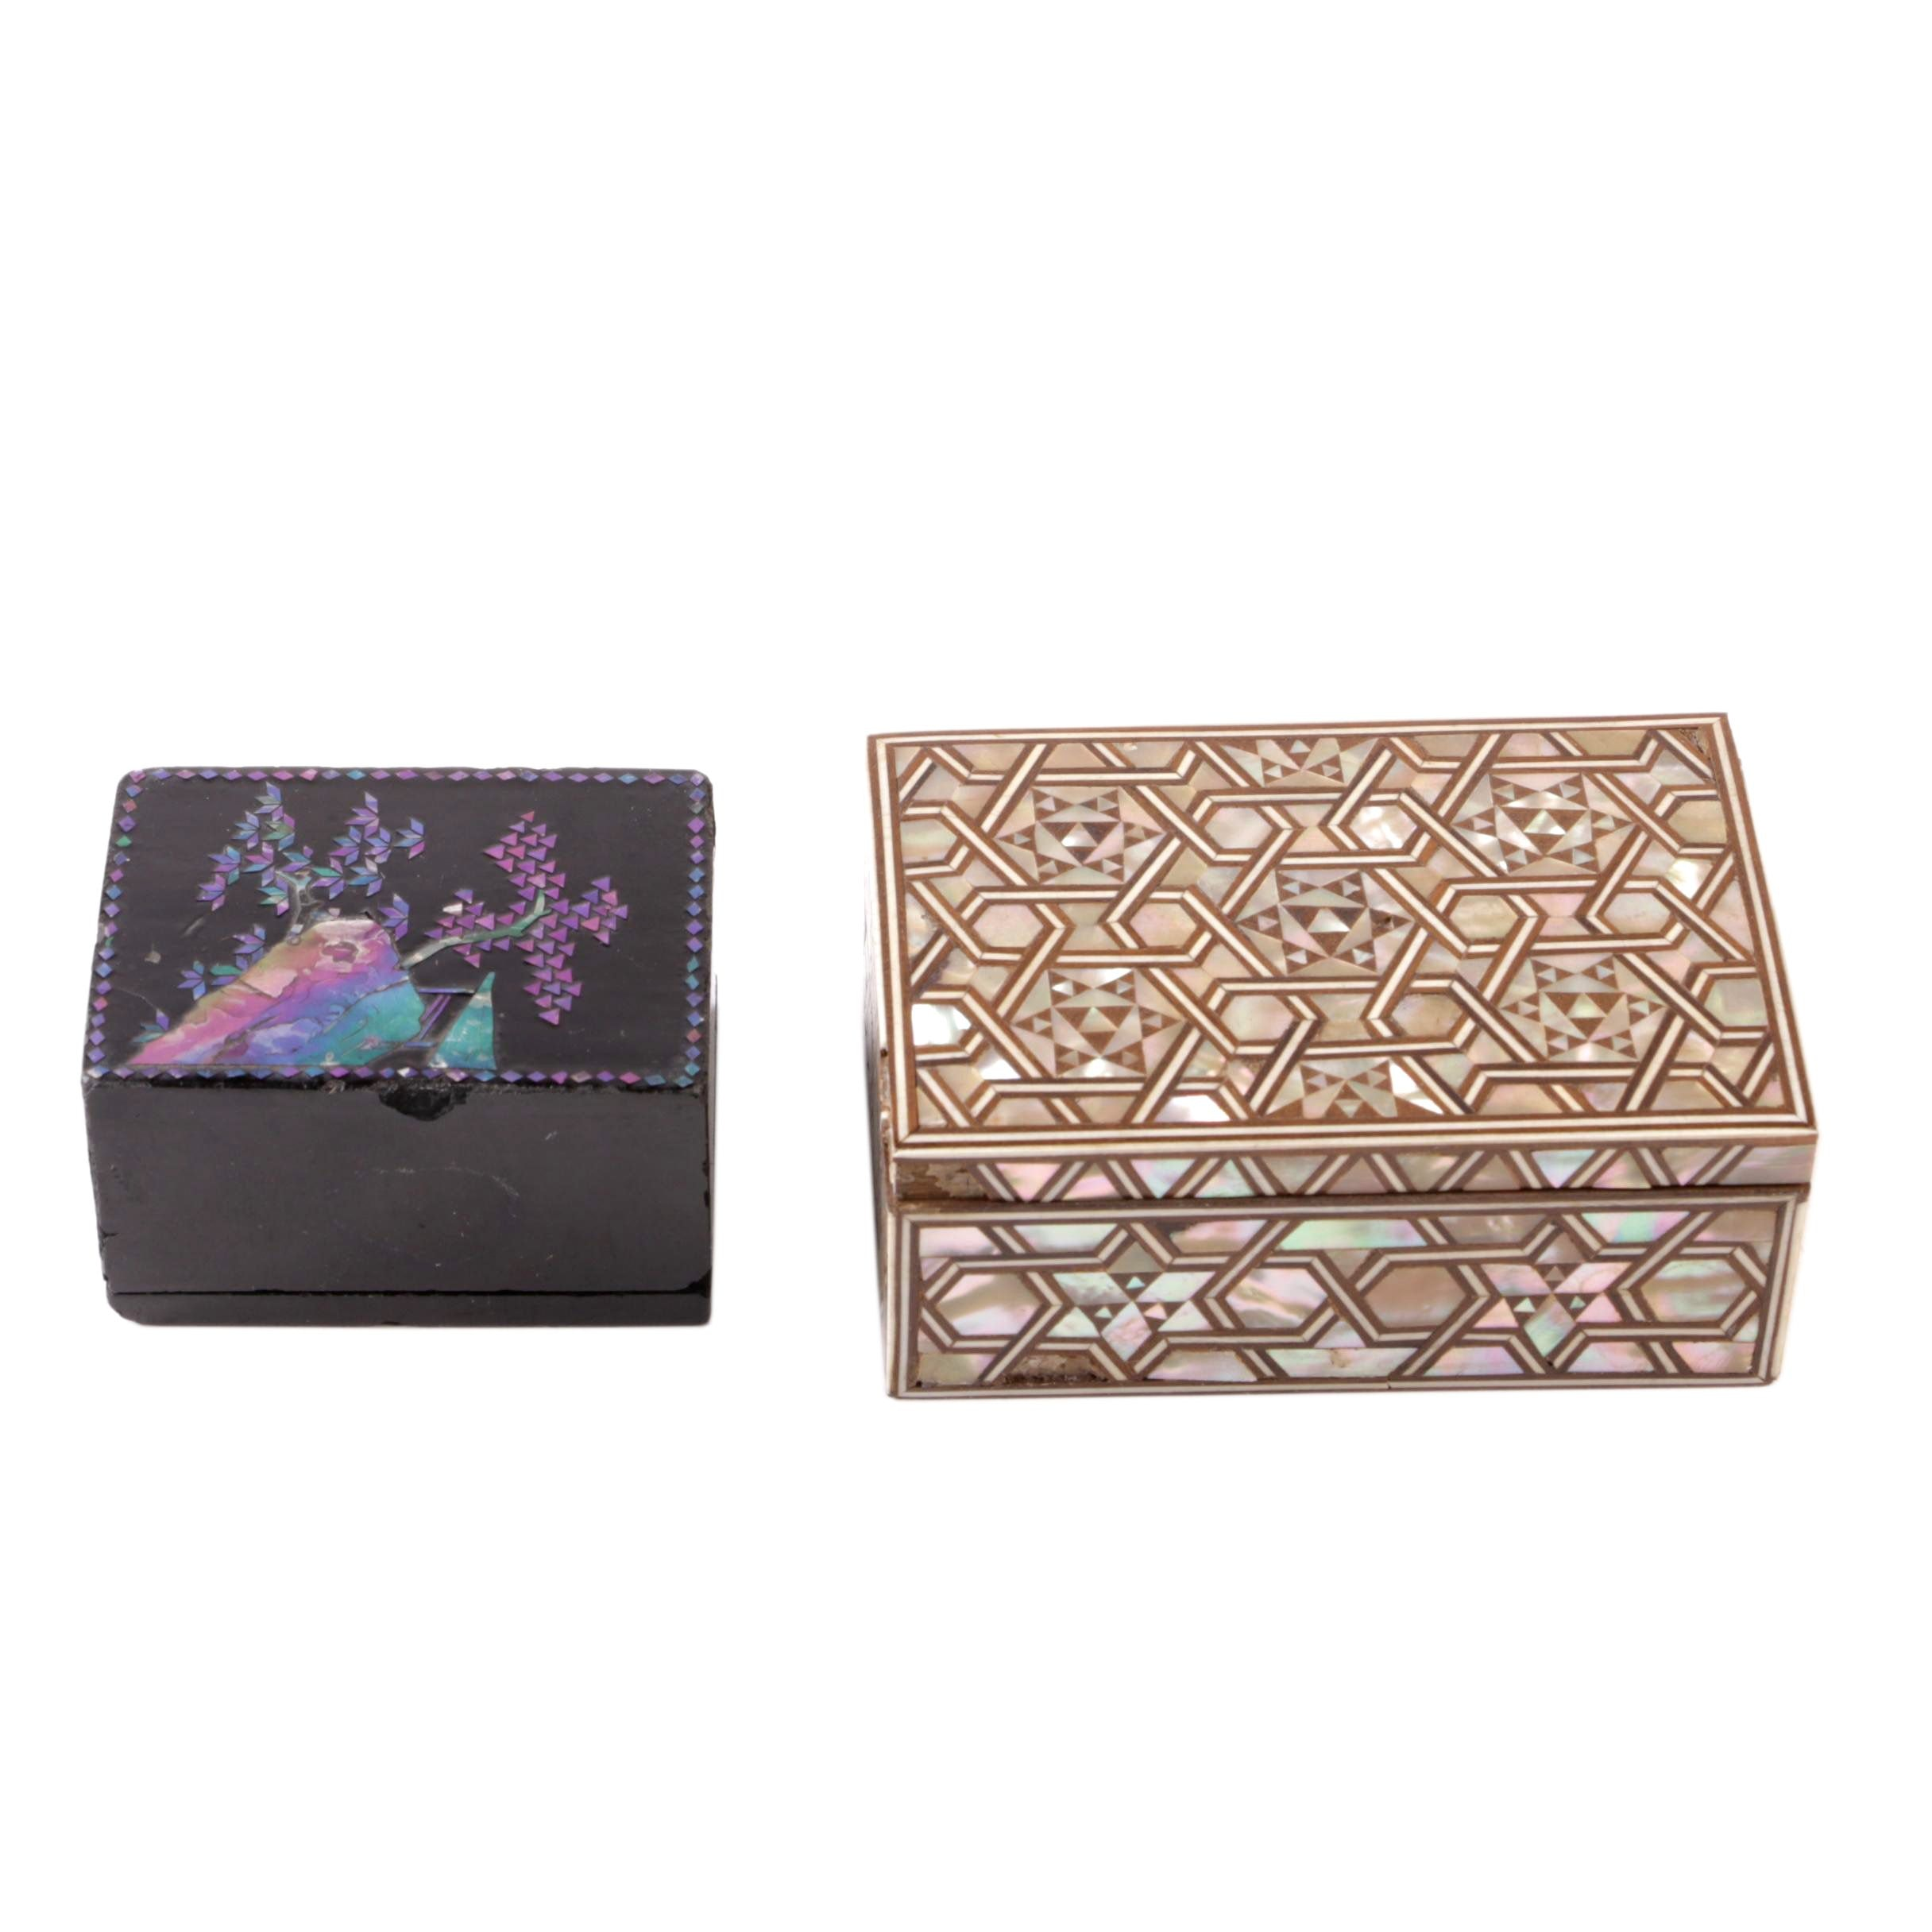 Lacquer and Inlay Decorative Boxes